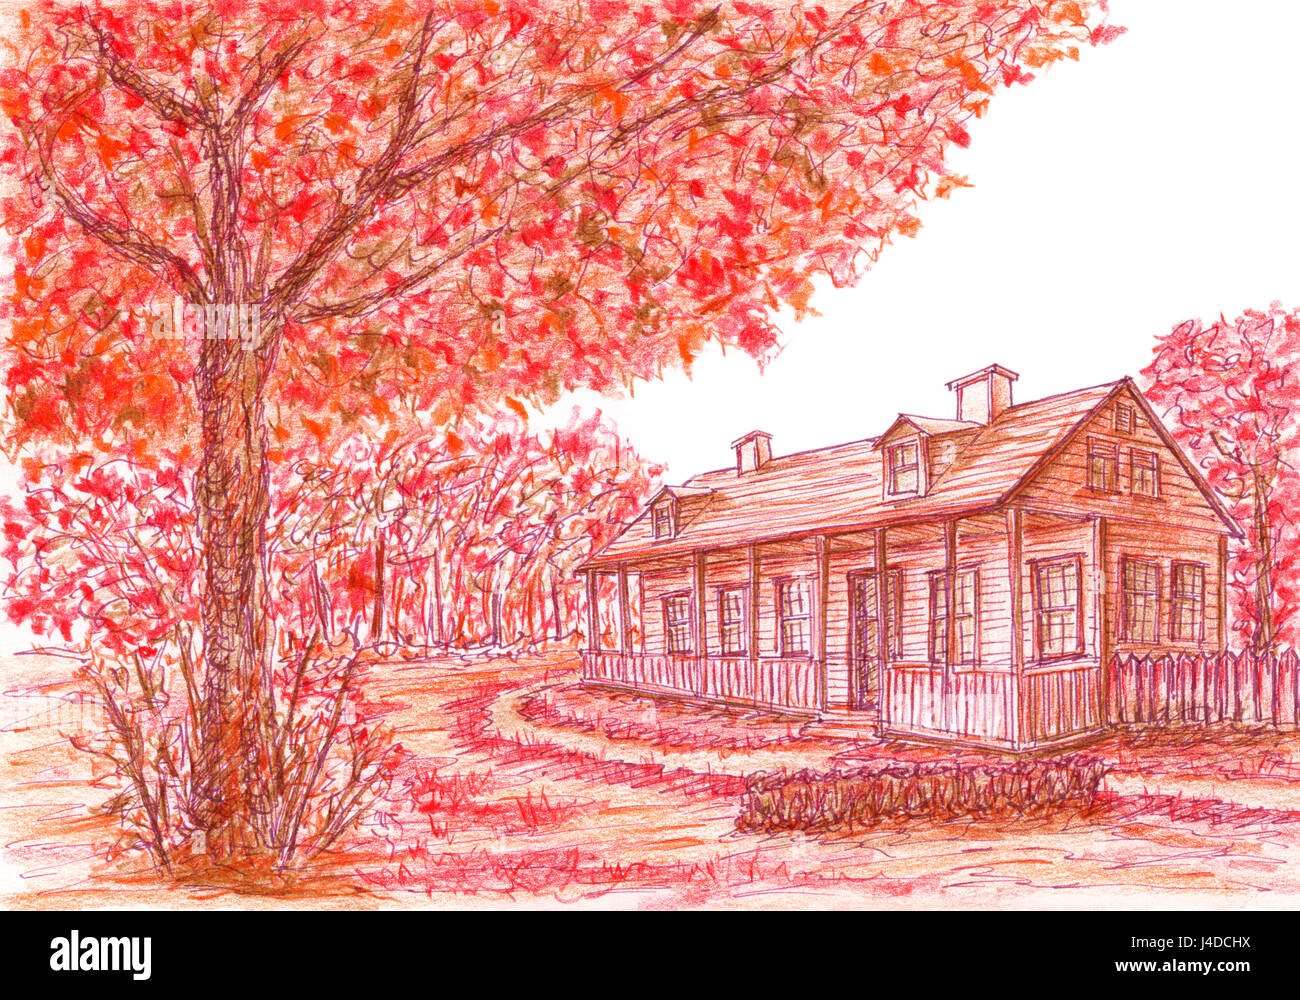 Sketch of ancient house and tree in loose style. Ink and colored pencils on paper. - Stock Image